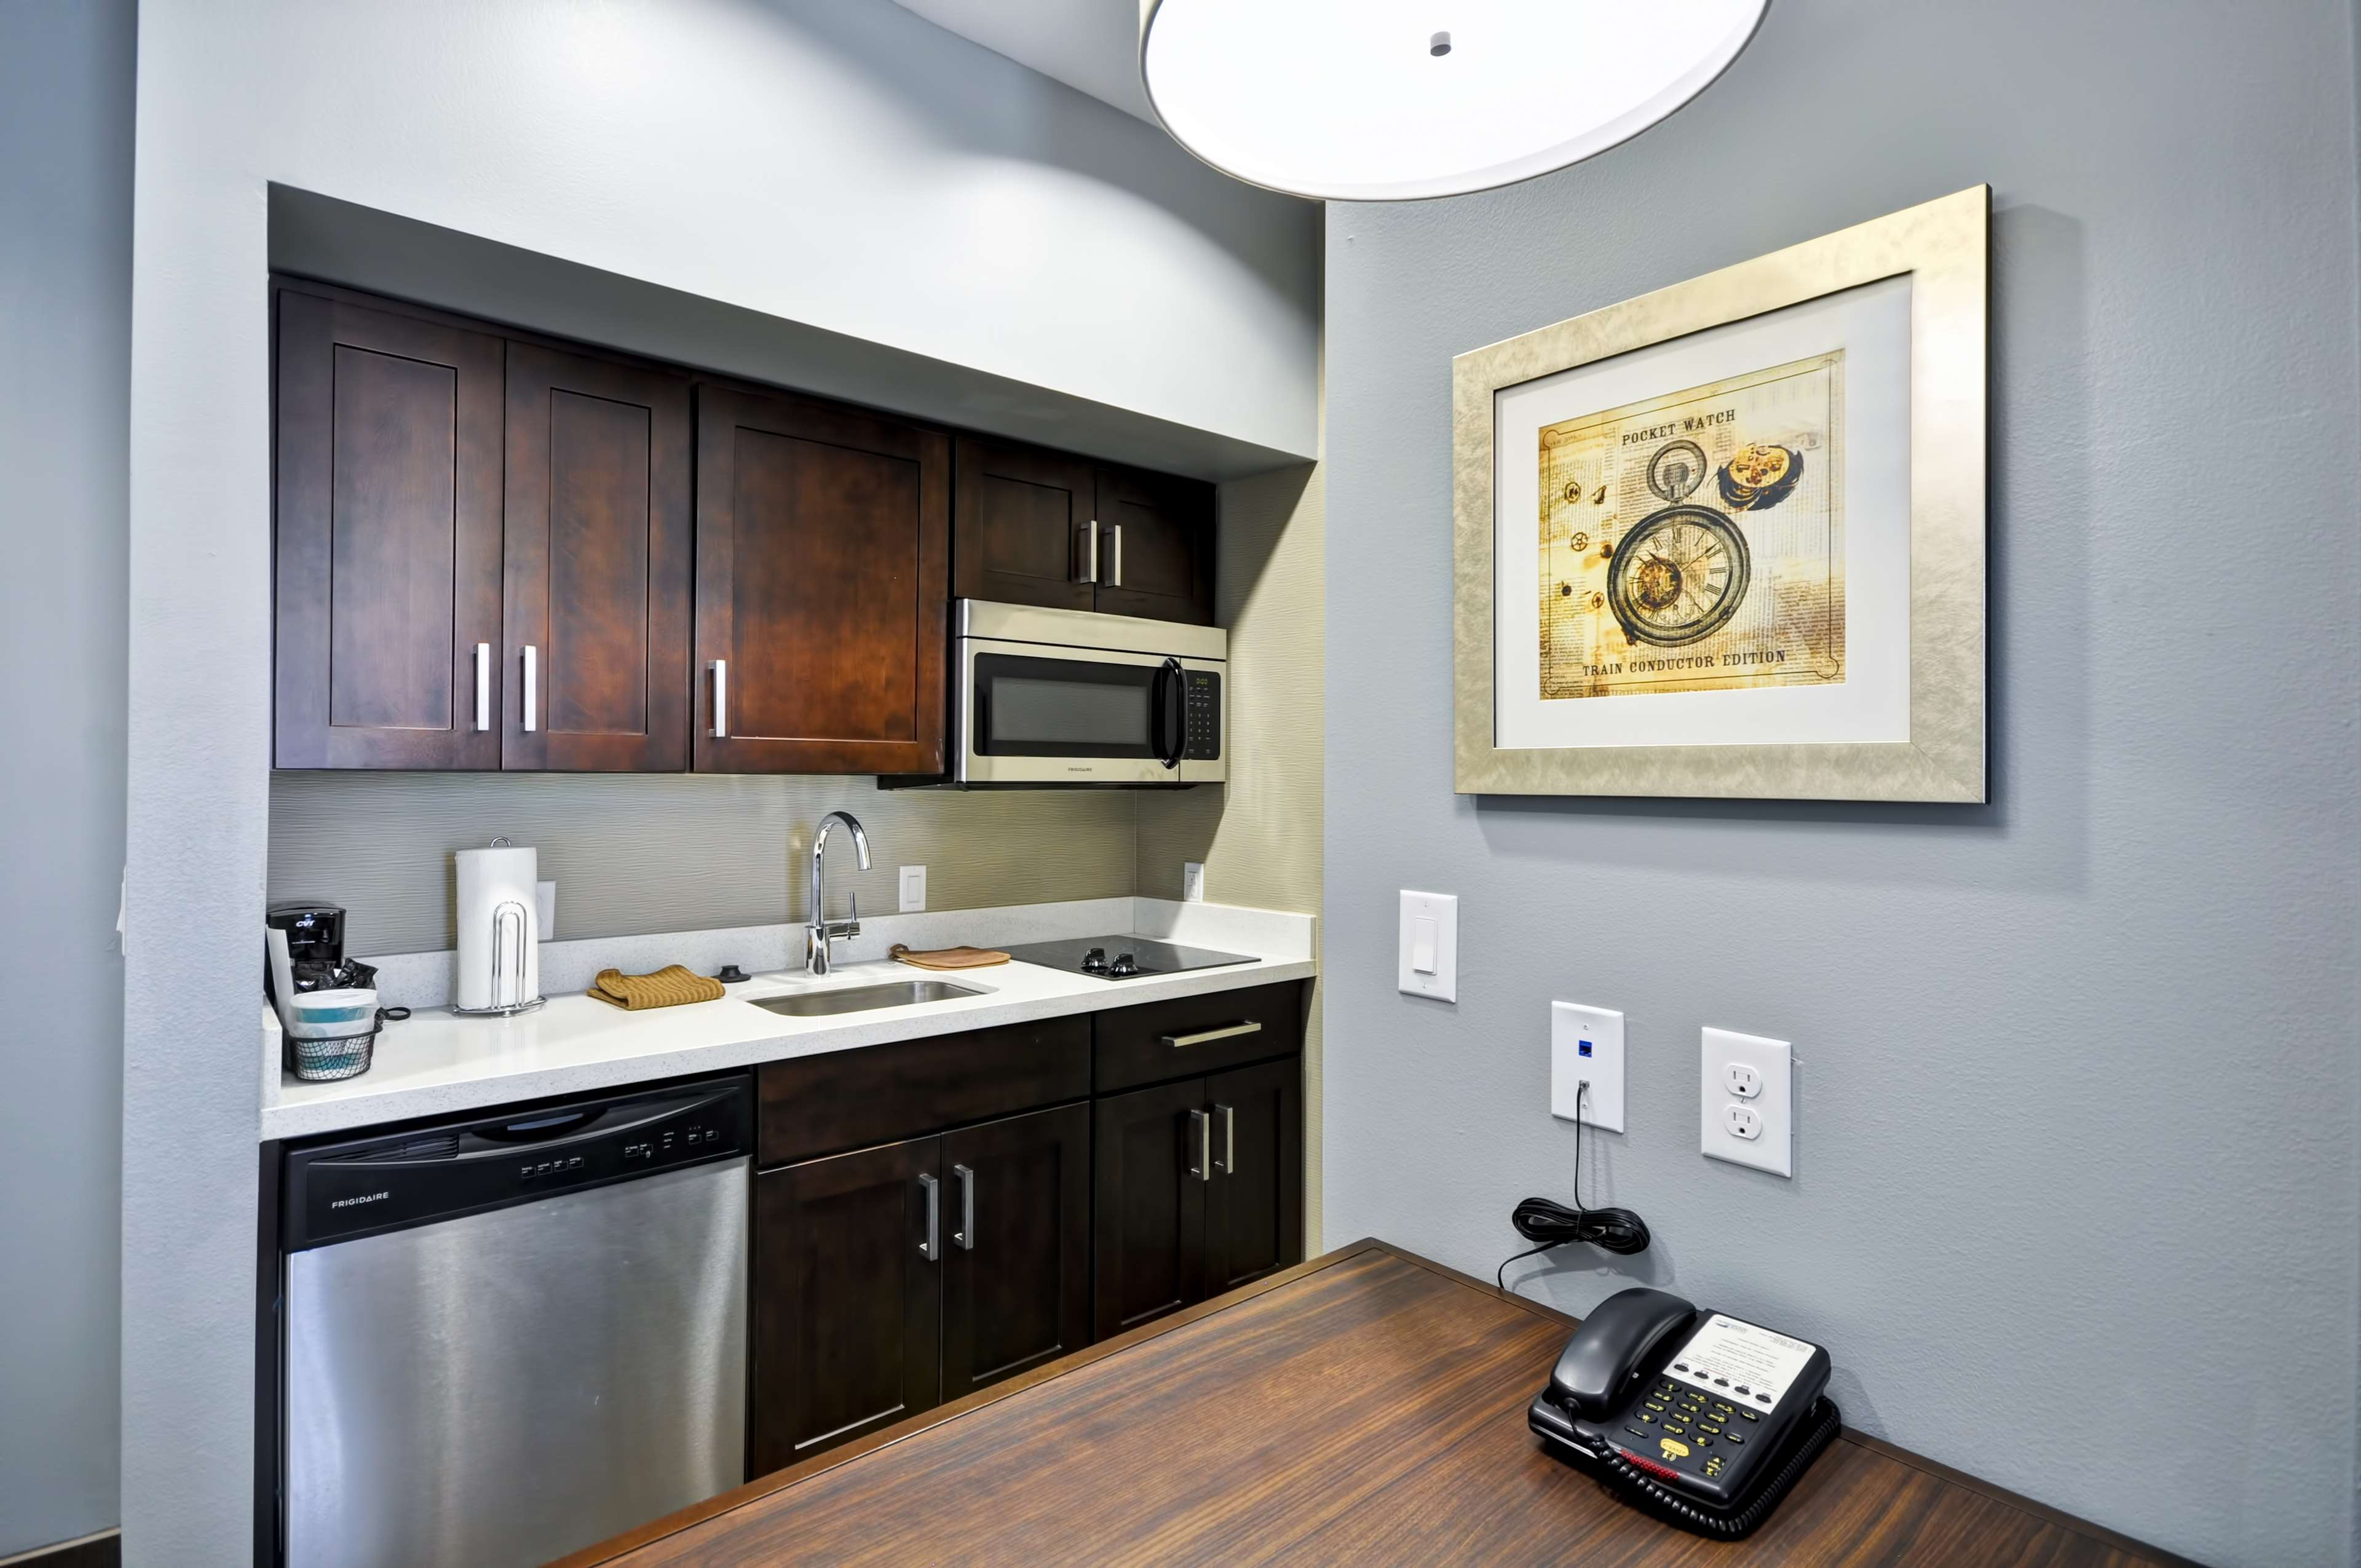 Homewood Suites by Hilton New Braunfels image 29